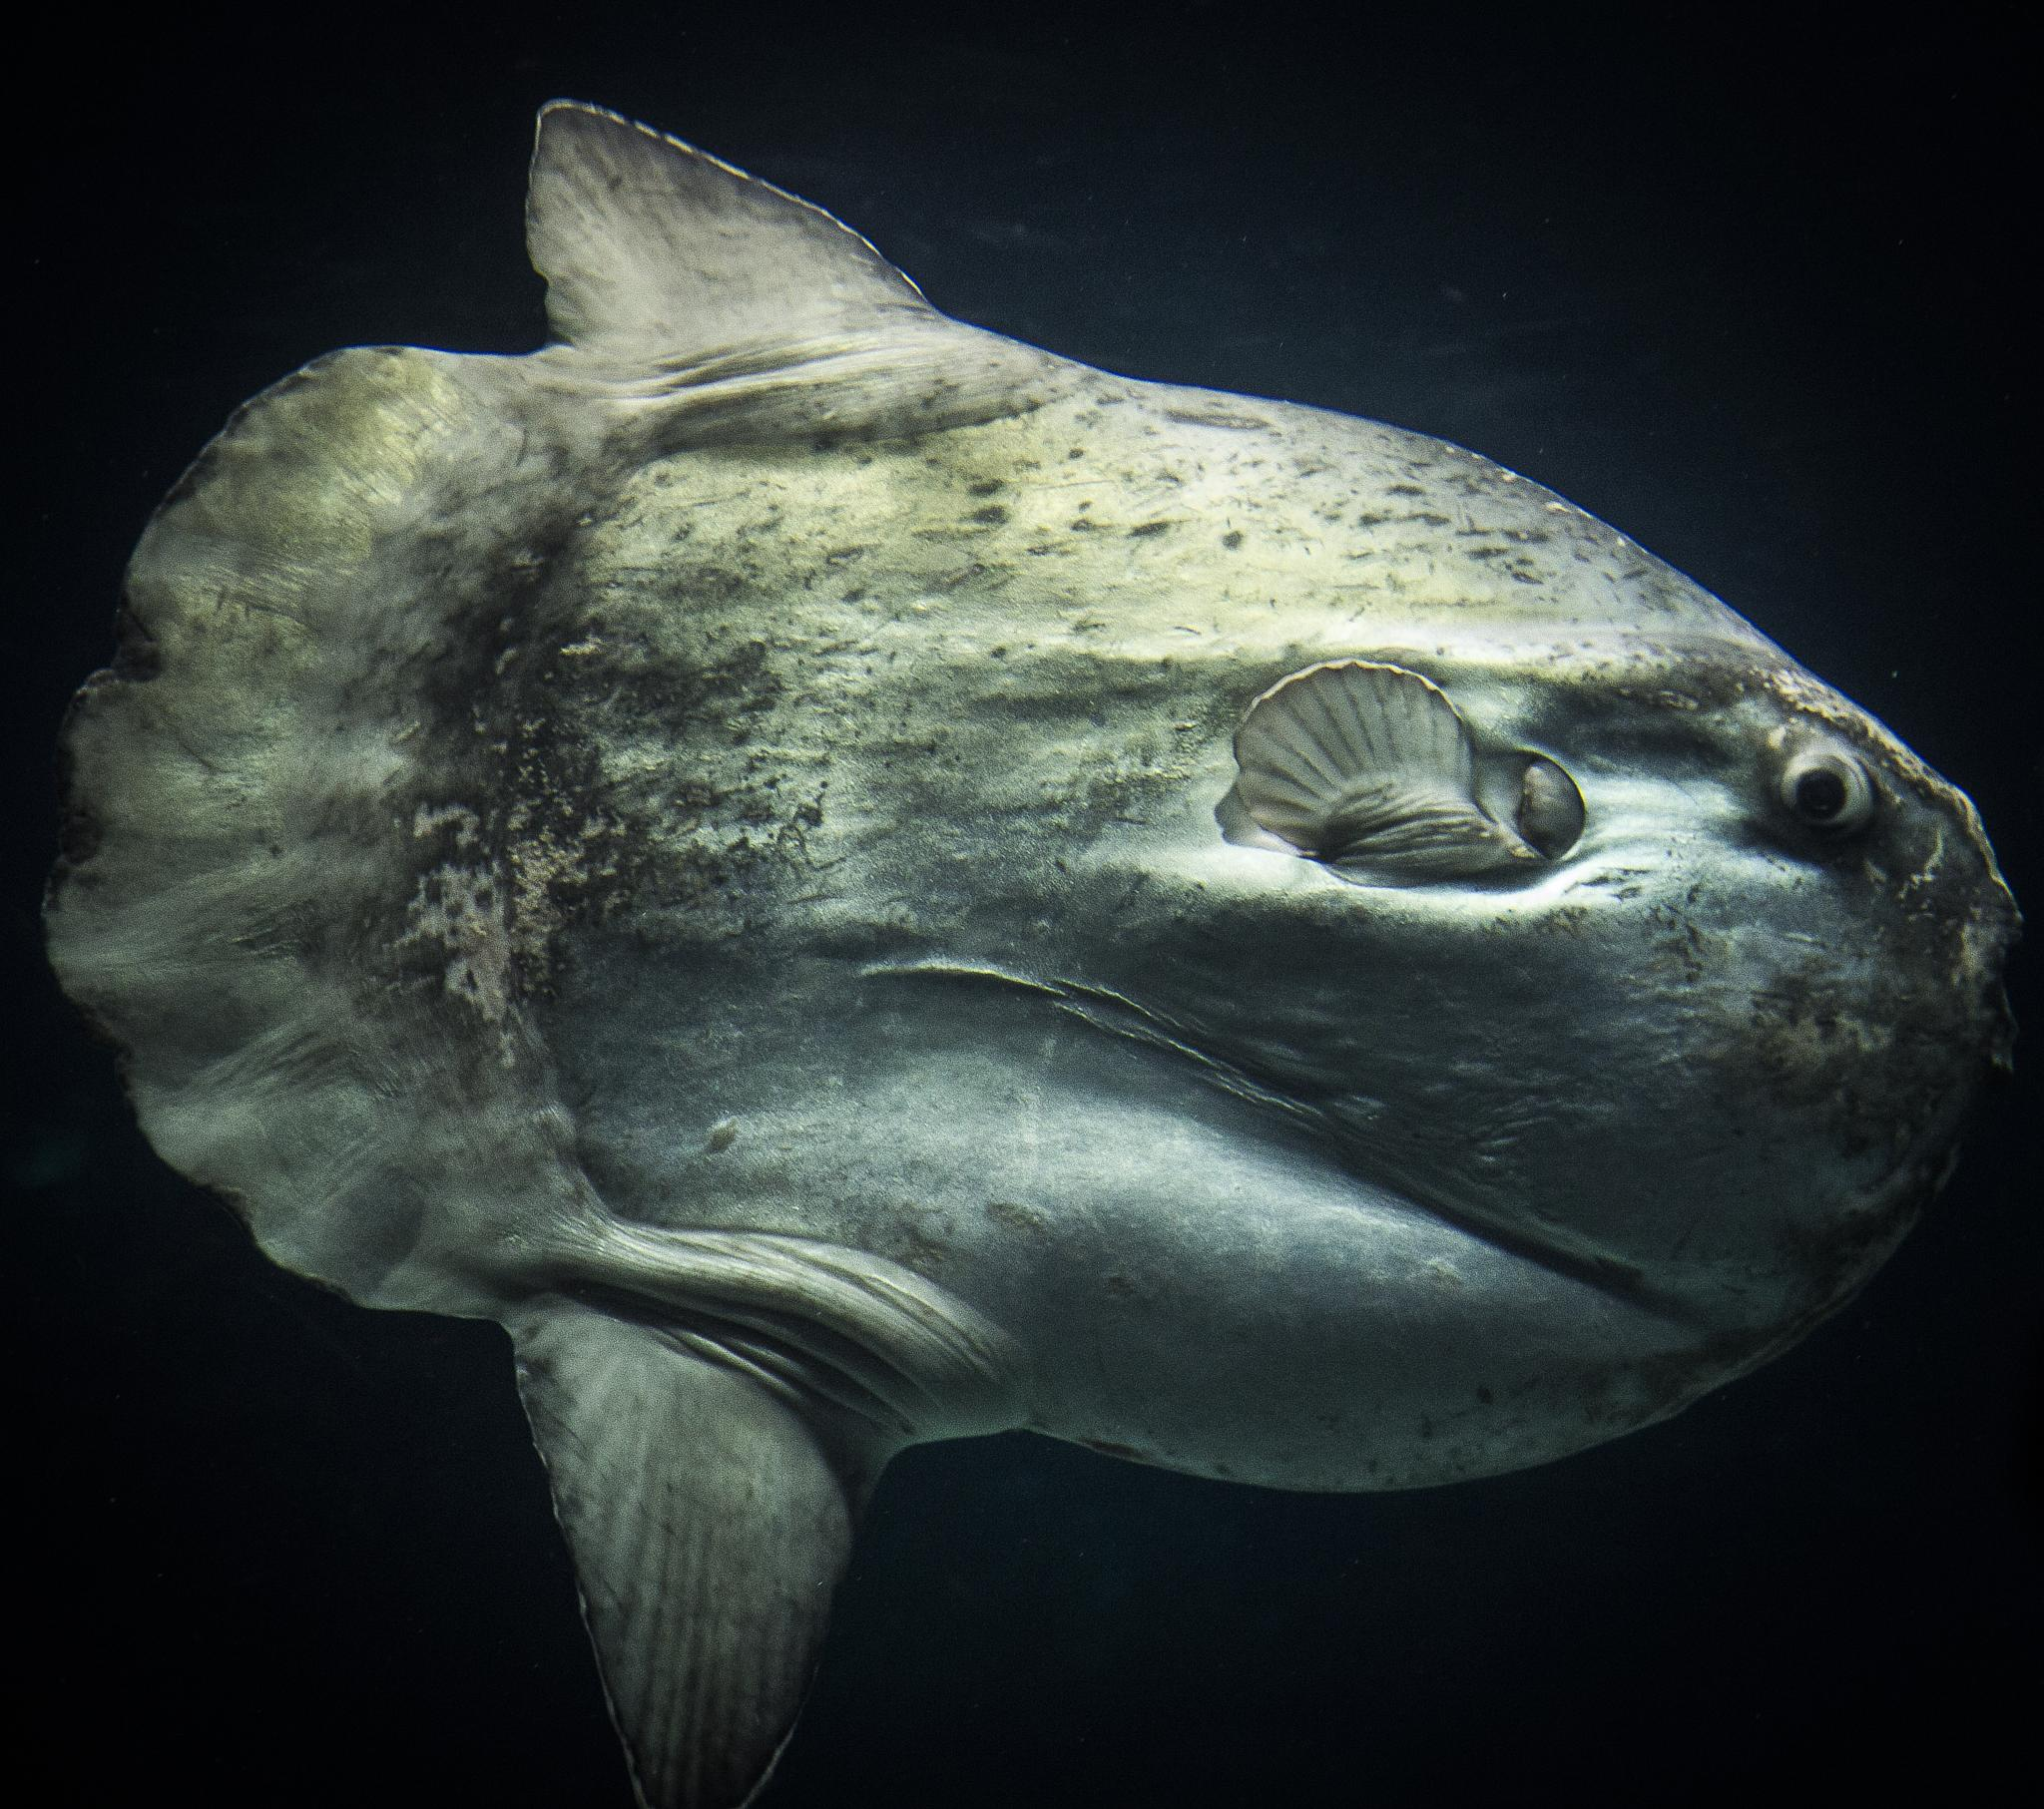 Sunfish by gerry.askefalk